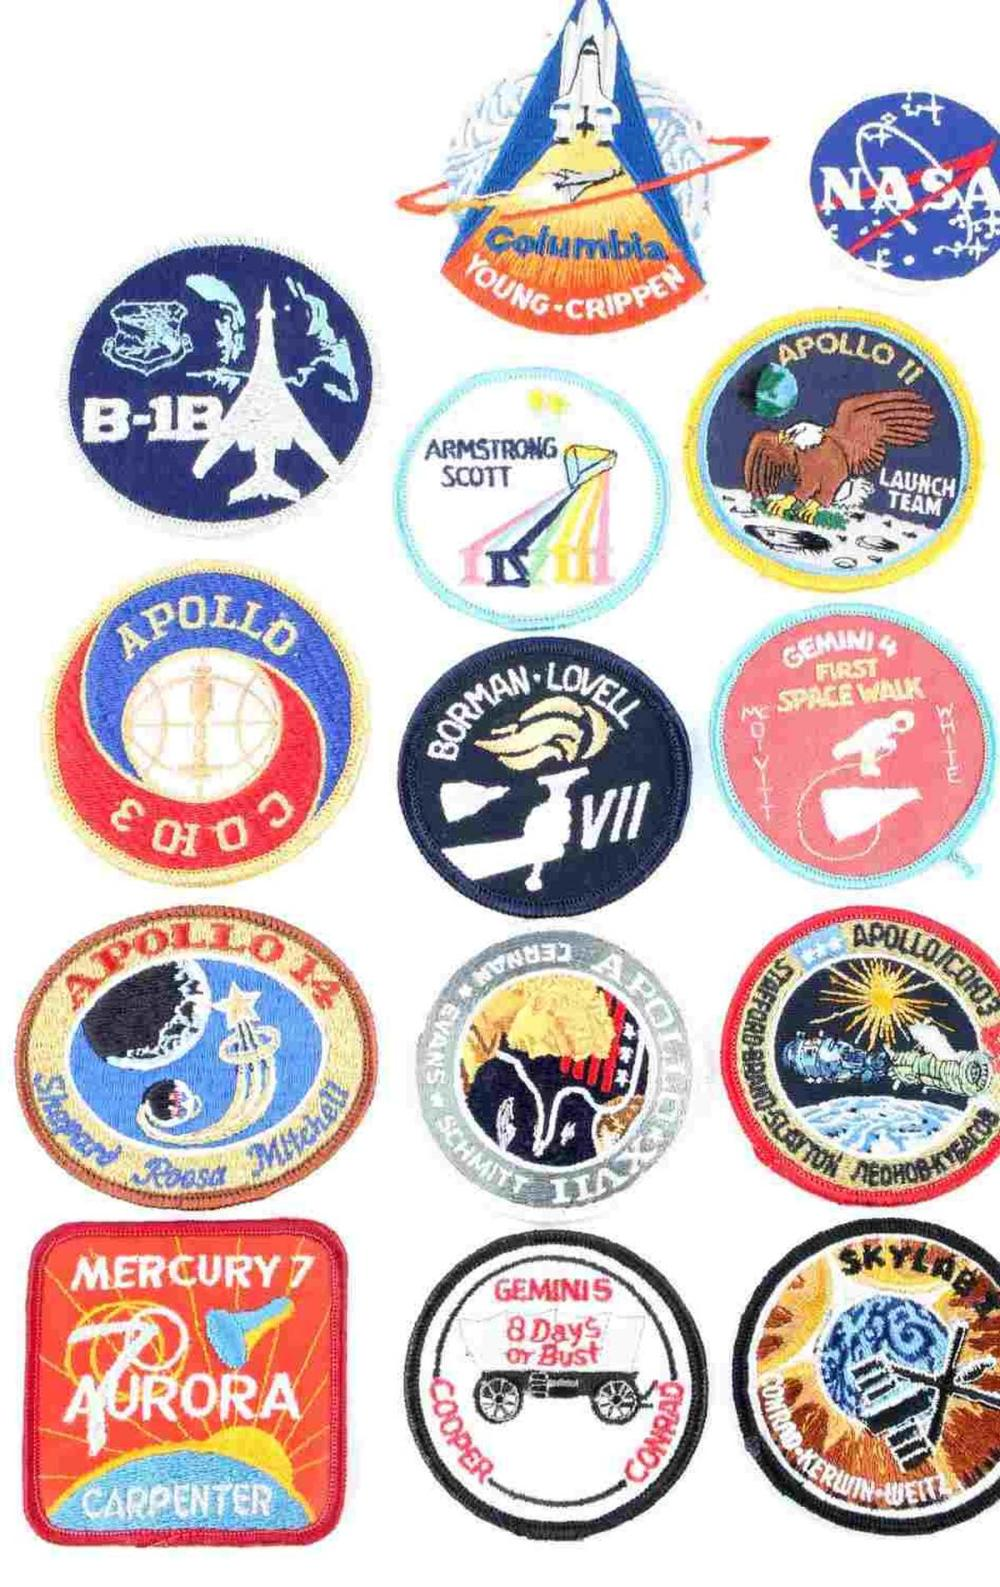 LOT OF 14 NASA SPACE SUIT MISSION ROCKET PATCHES